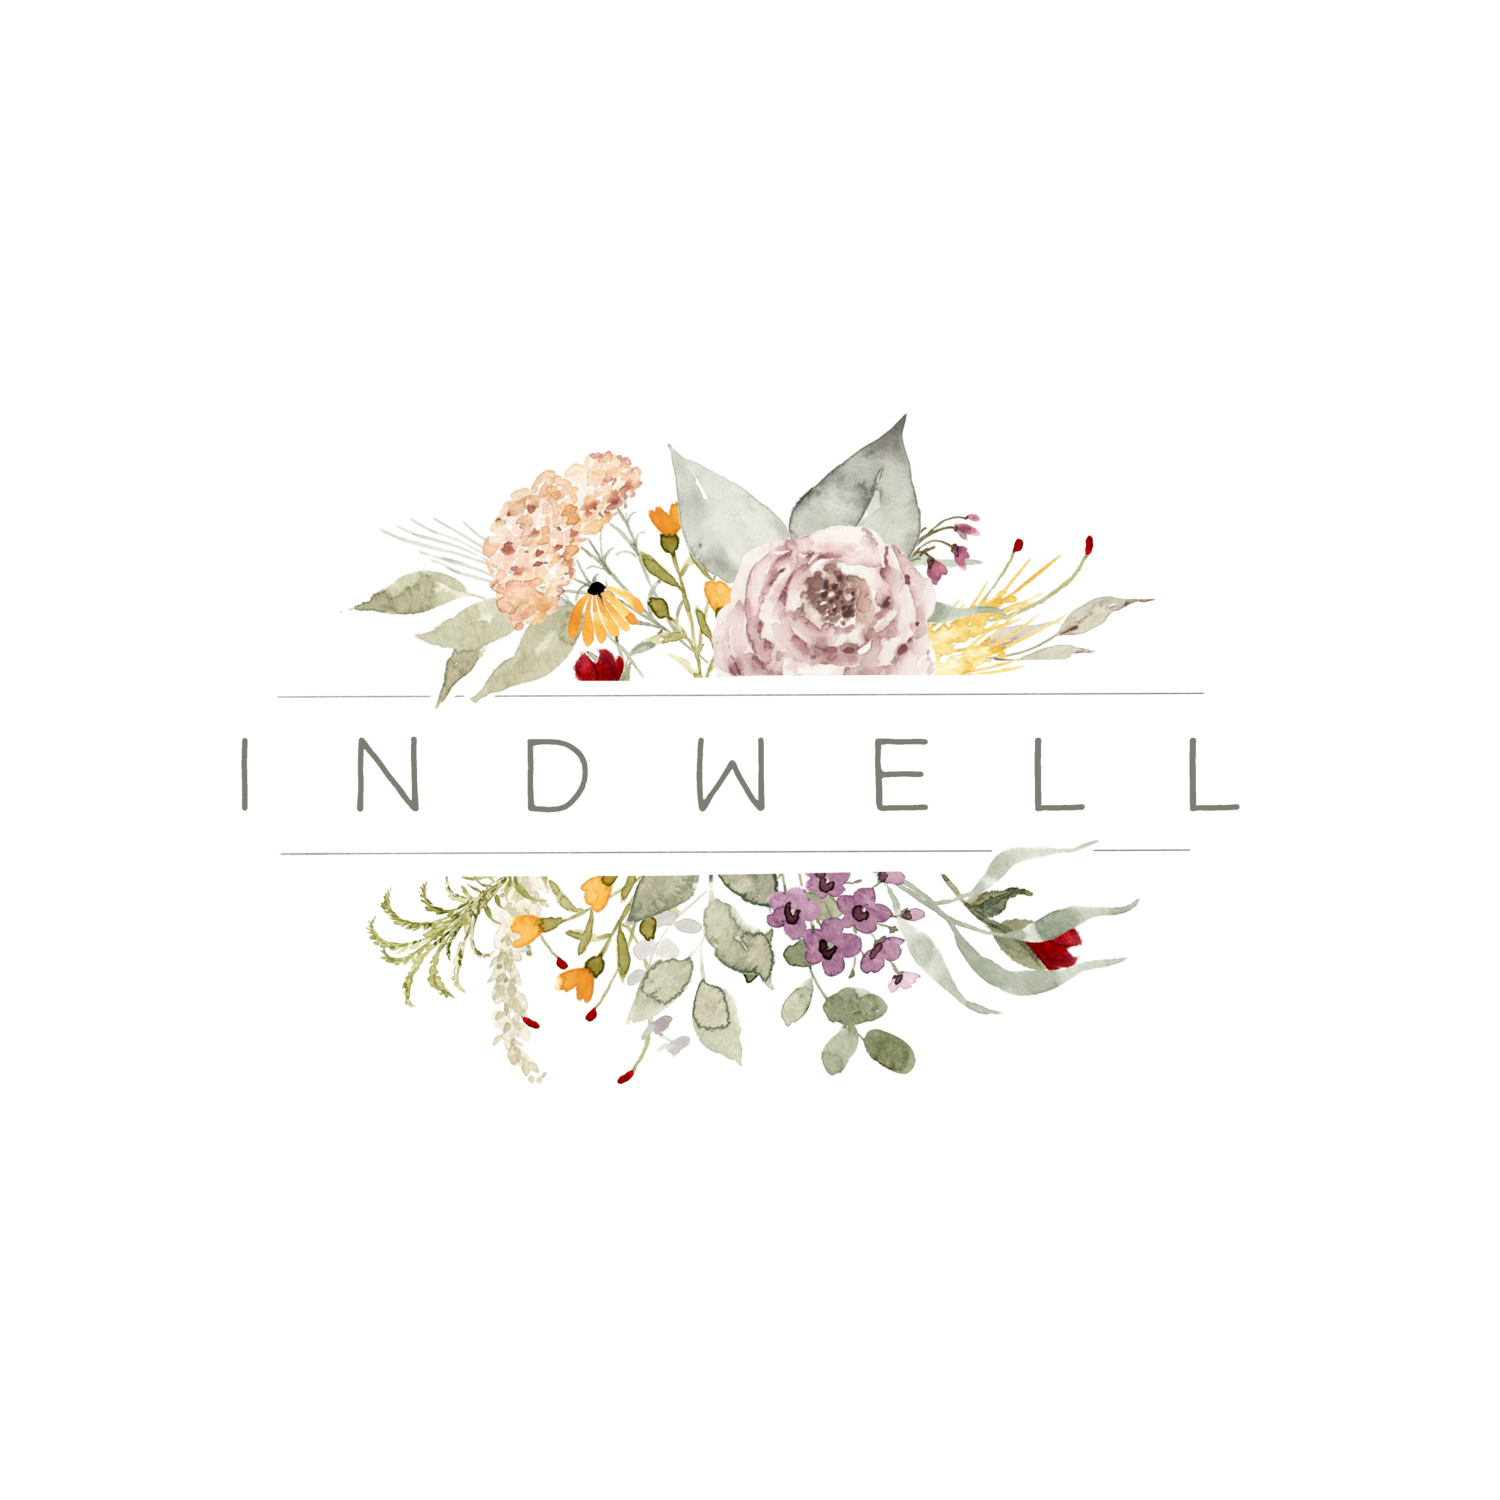 Indwell Weddings